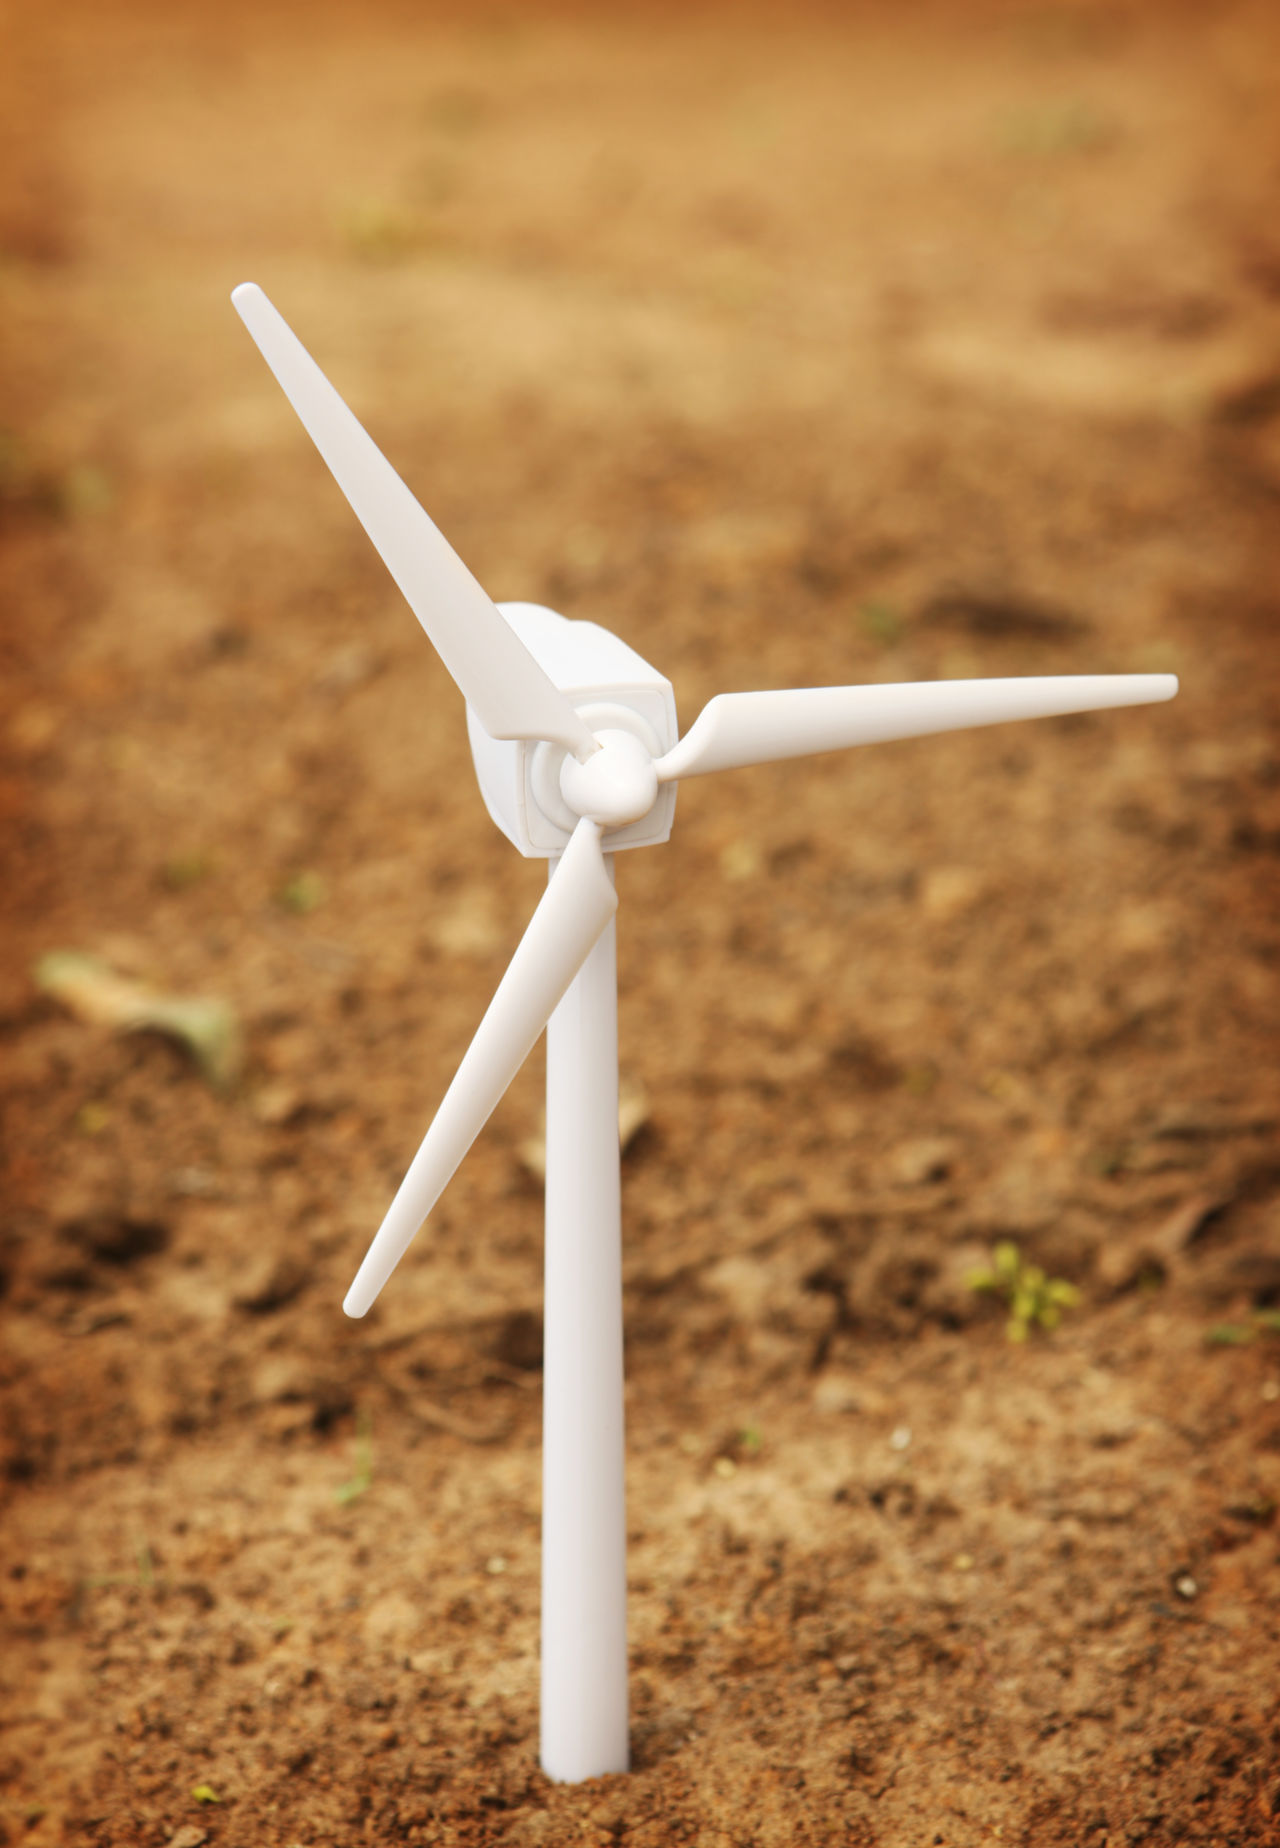 Wind Turbine in Ground Alternative Energy Day Environment Environmental Conservation Green Green Energy Miniature Outdoors Power Toy Wind Wind Power Wind Power Generator Wind Turbine Wind Turbines